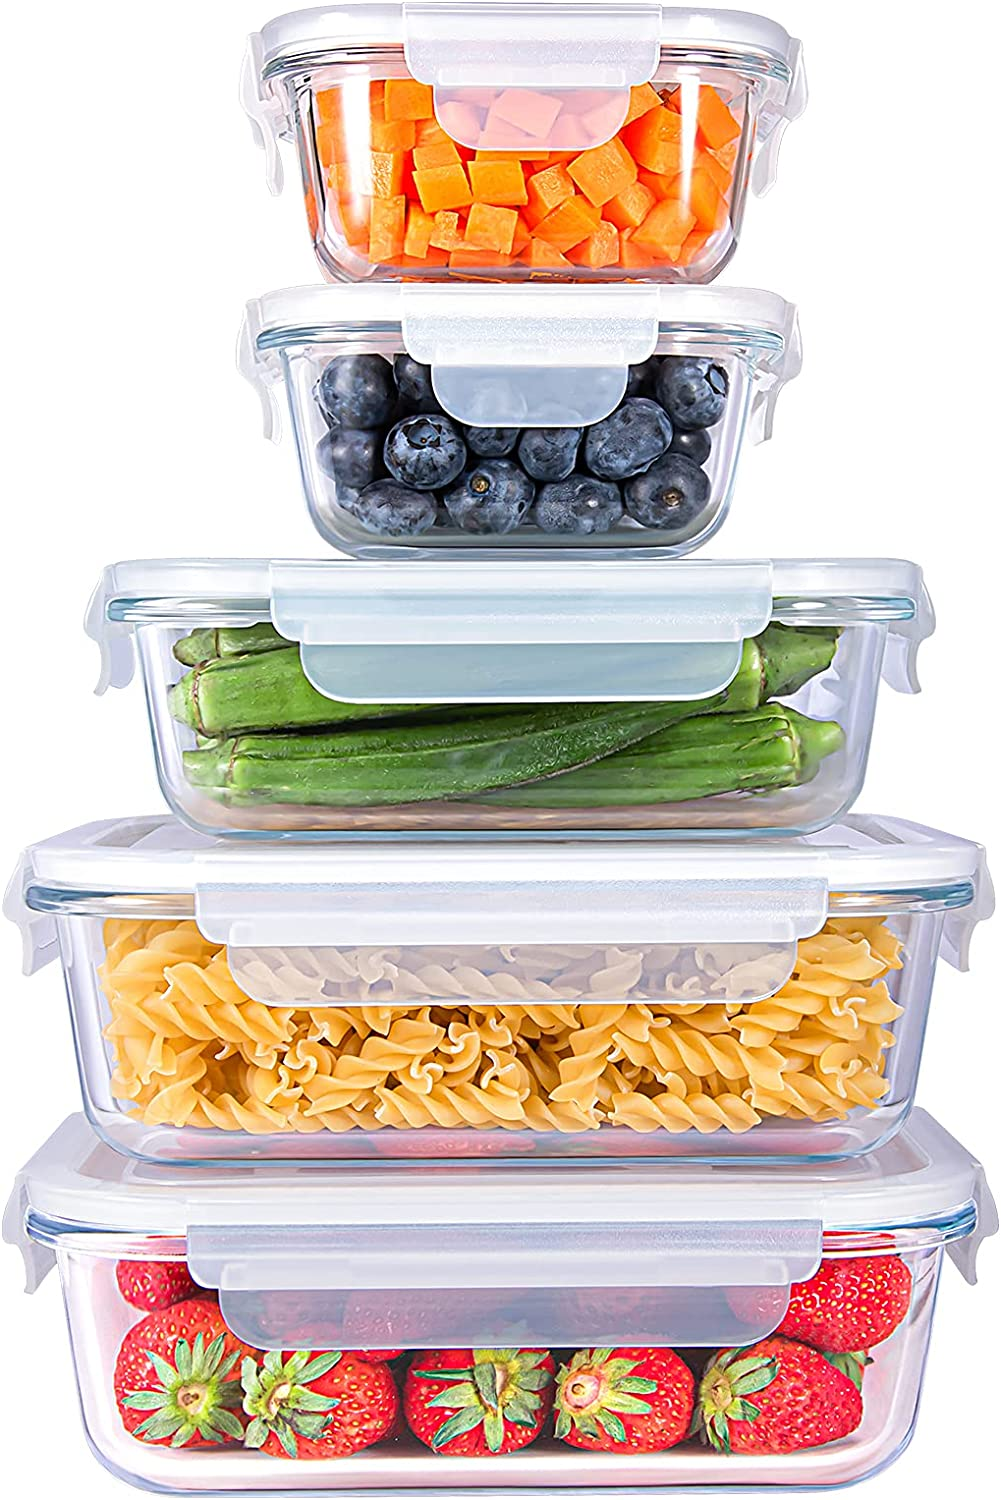 SHOMOTE Glass Food Storage Containers Set with Lids Airtight, BPA-Free Sealable Stackable Clear Portion Control Bowls, Kitchen Stuff Lunch Meal Prep, Freezer Microwave Dishwasher Safe, Gift 5 Pack